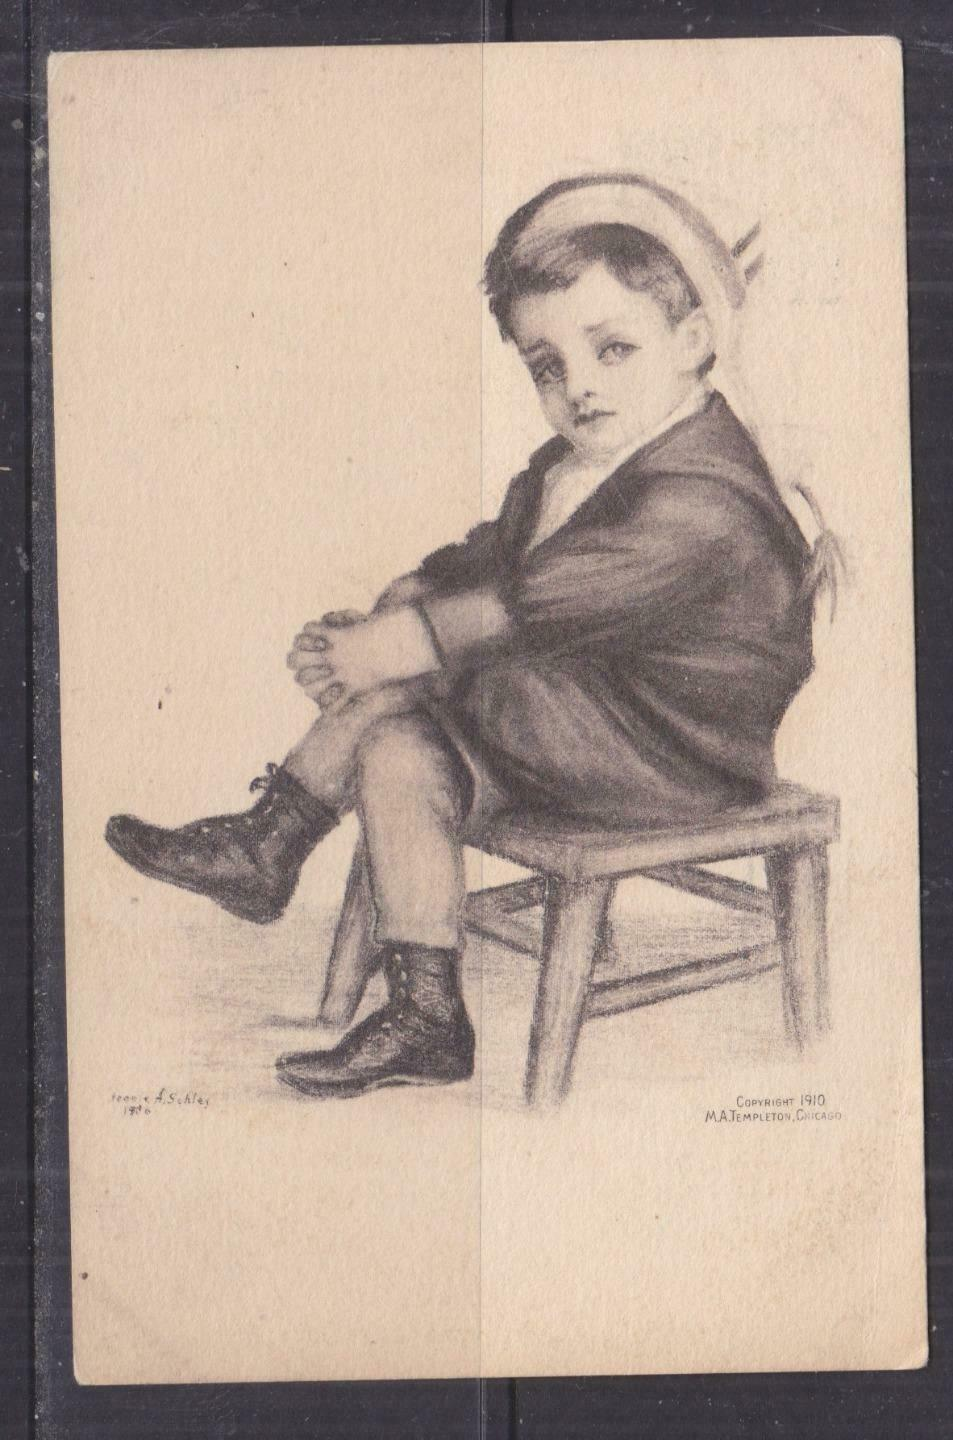 UNITED STATES, 1910 ppc. Young Boy on Chair, 1c. Chicago to Milwaukee.